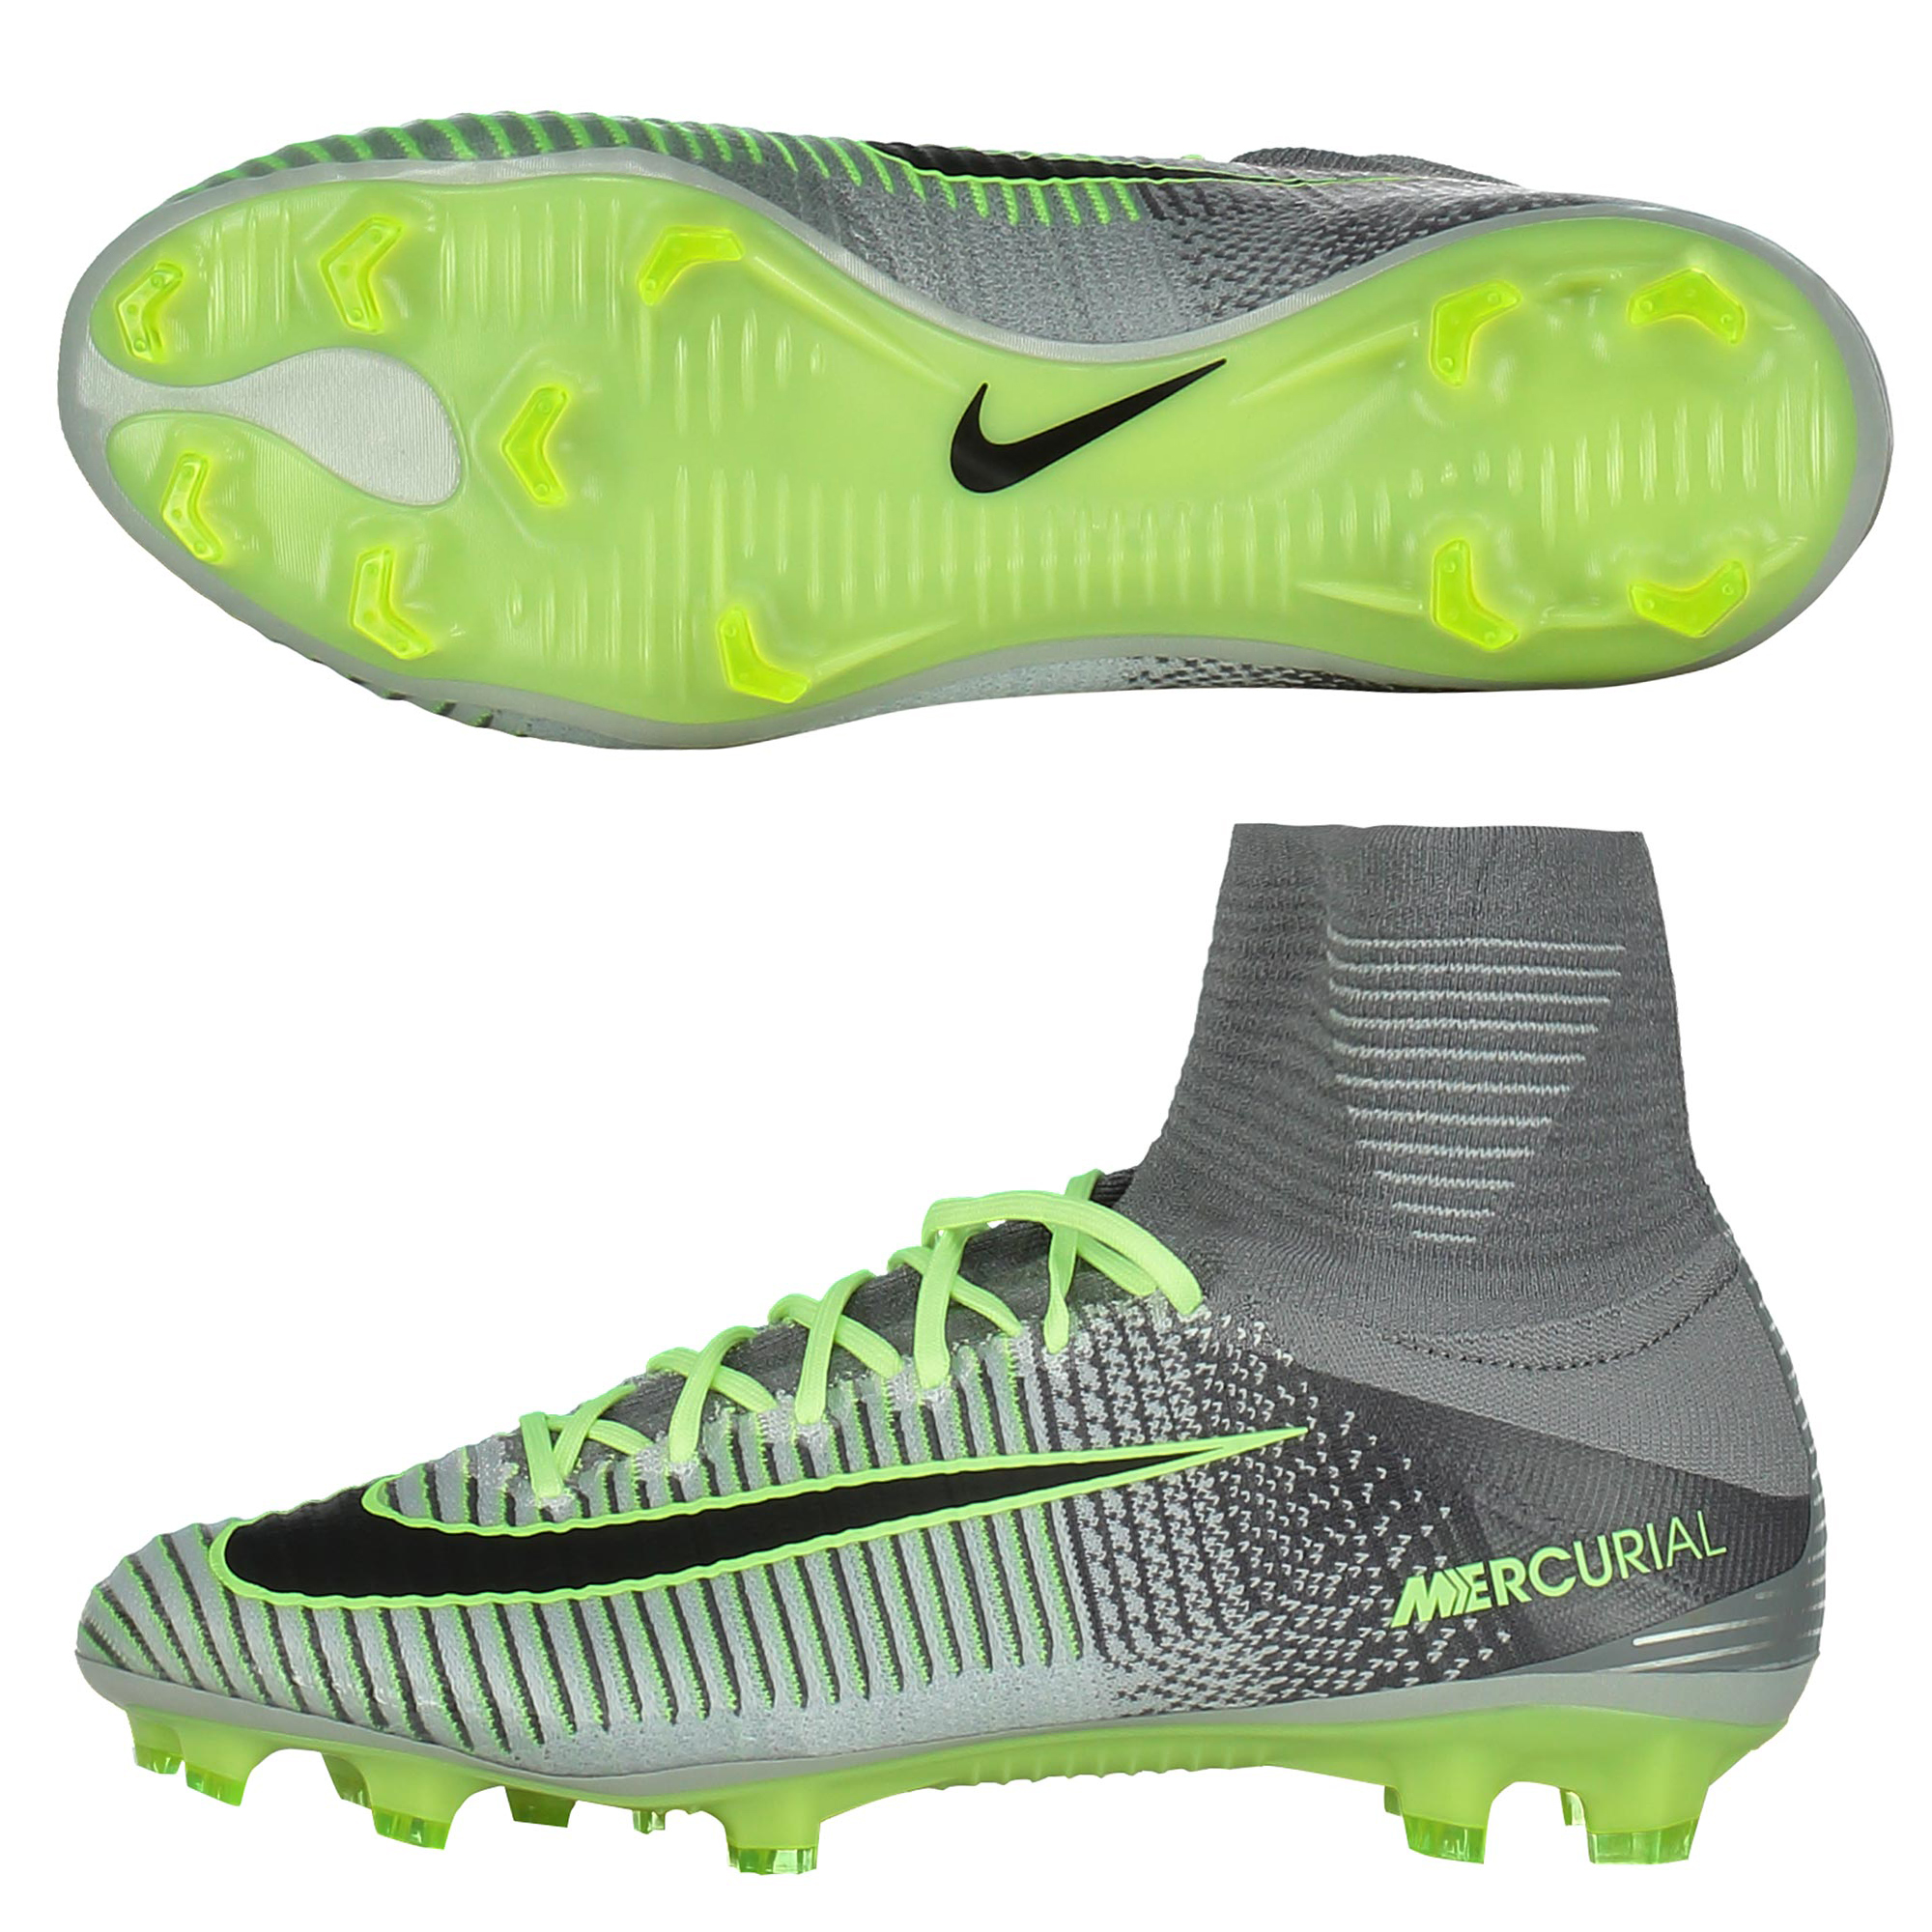 Nike Mercurial Superfly V FG Pure Platinum/B